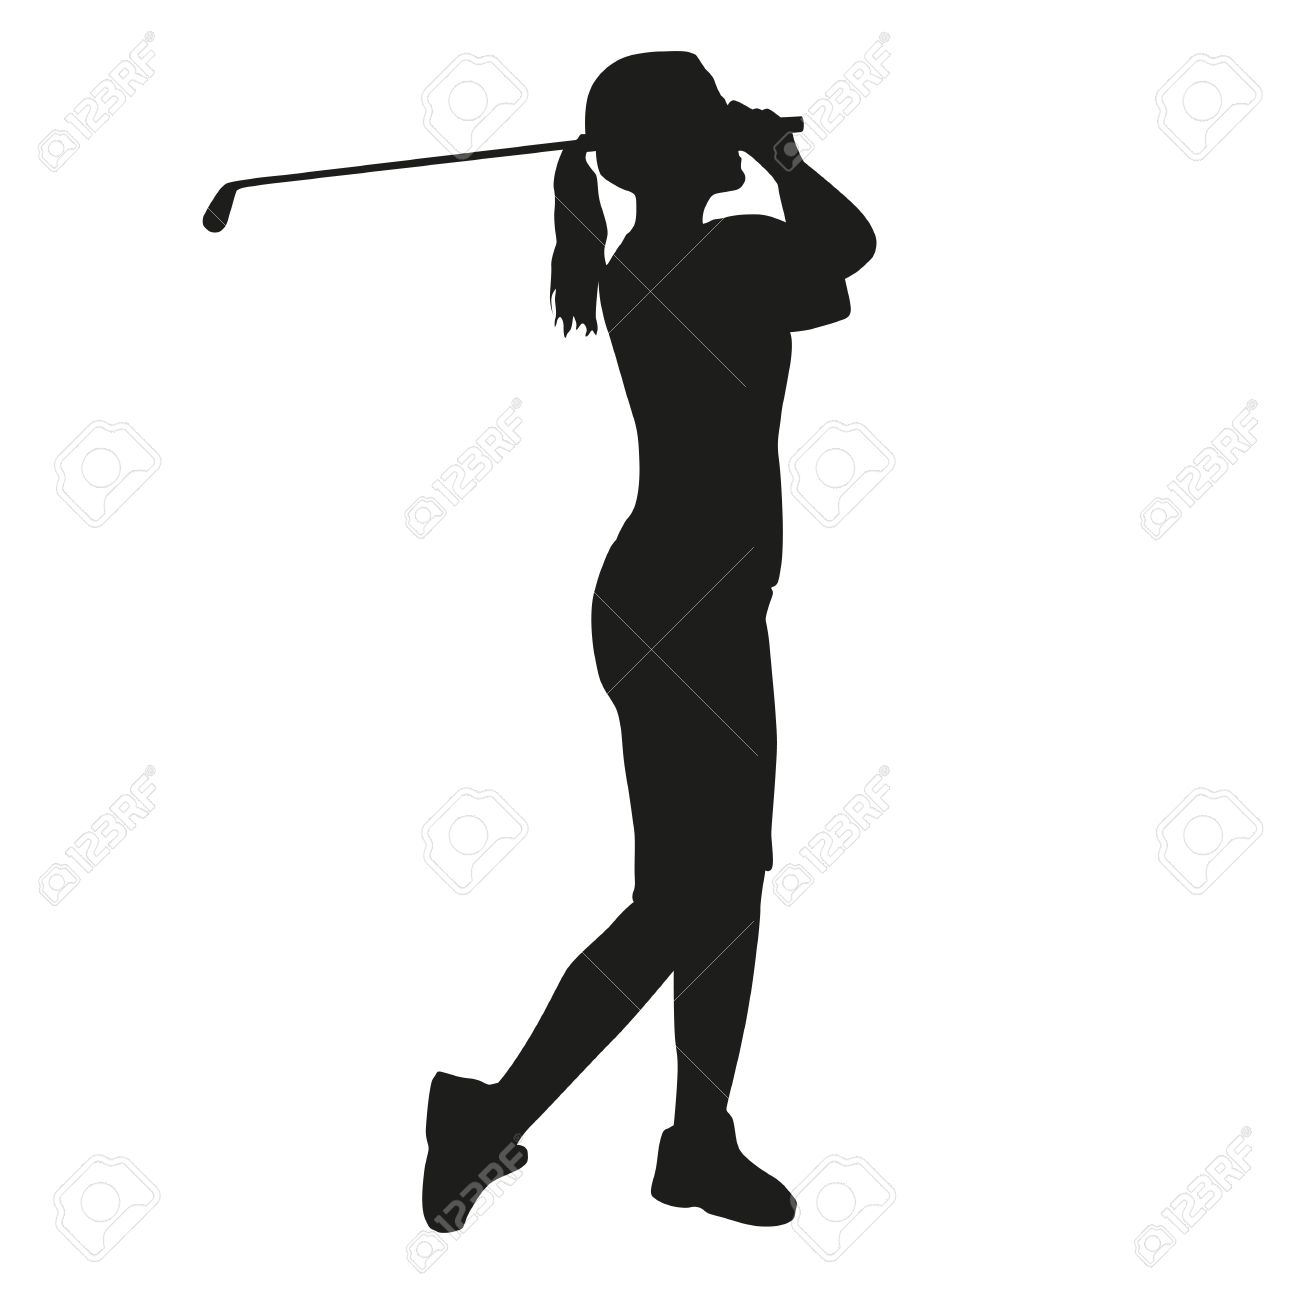 woman golfer silhouette stock vector 44630932